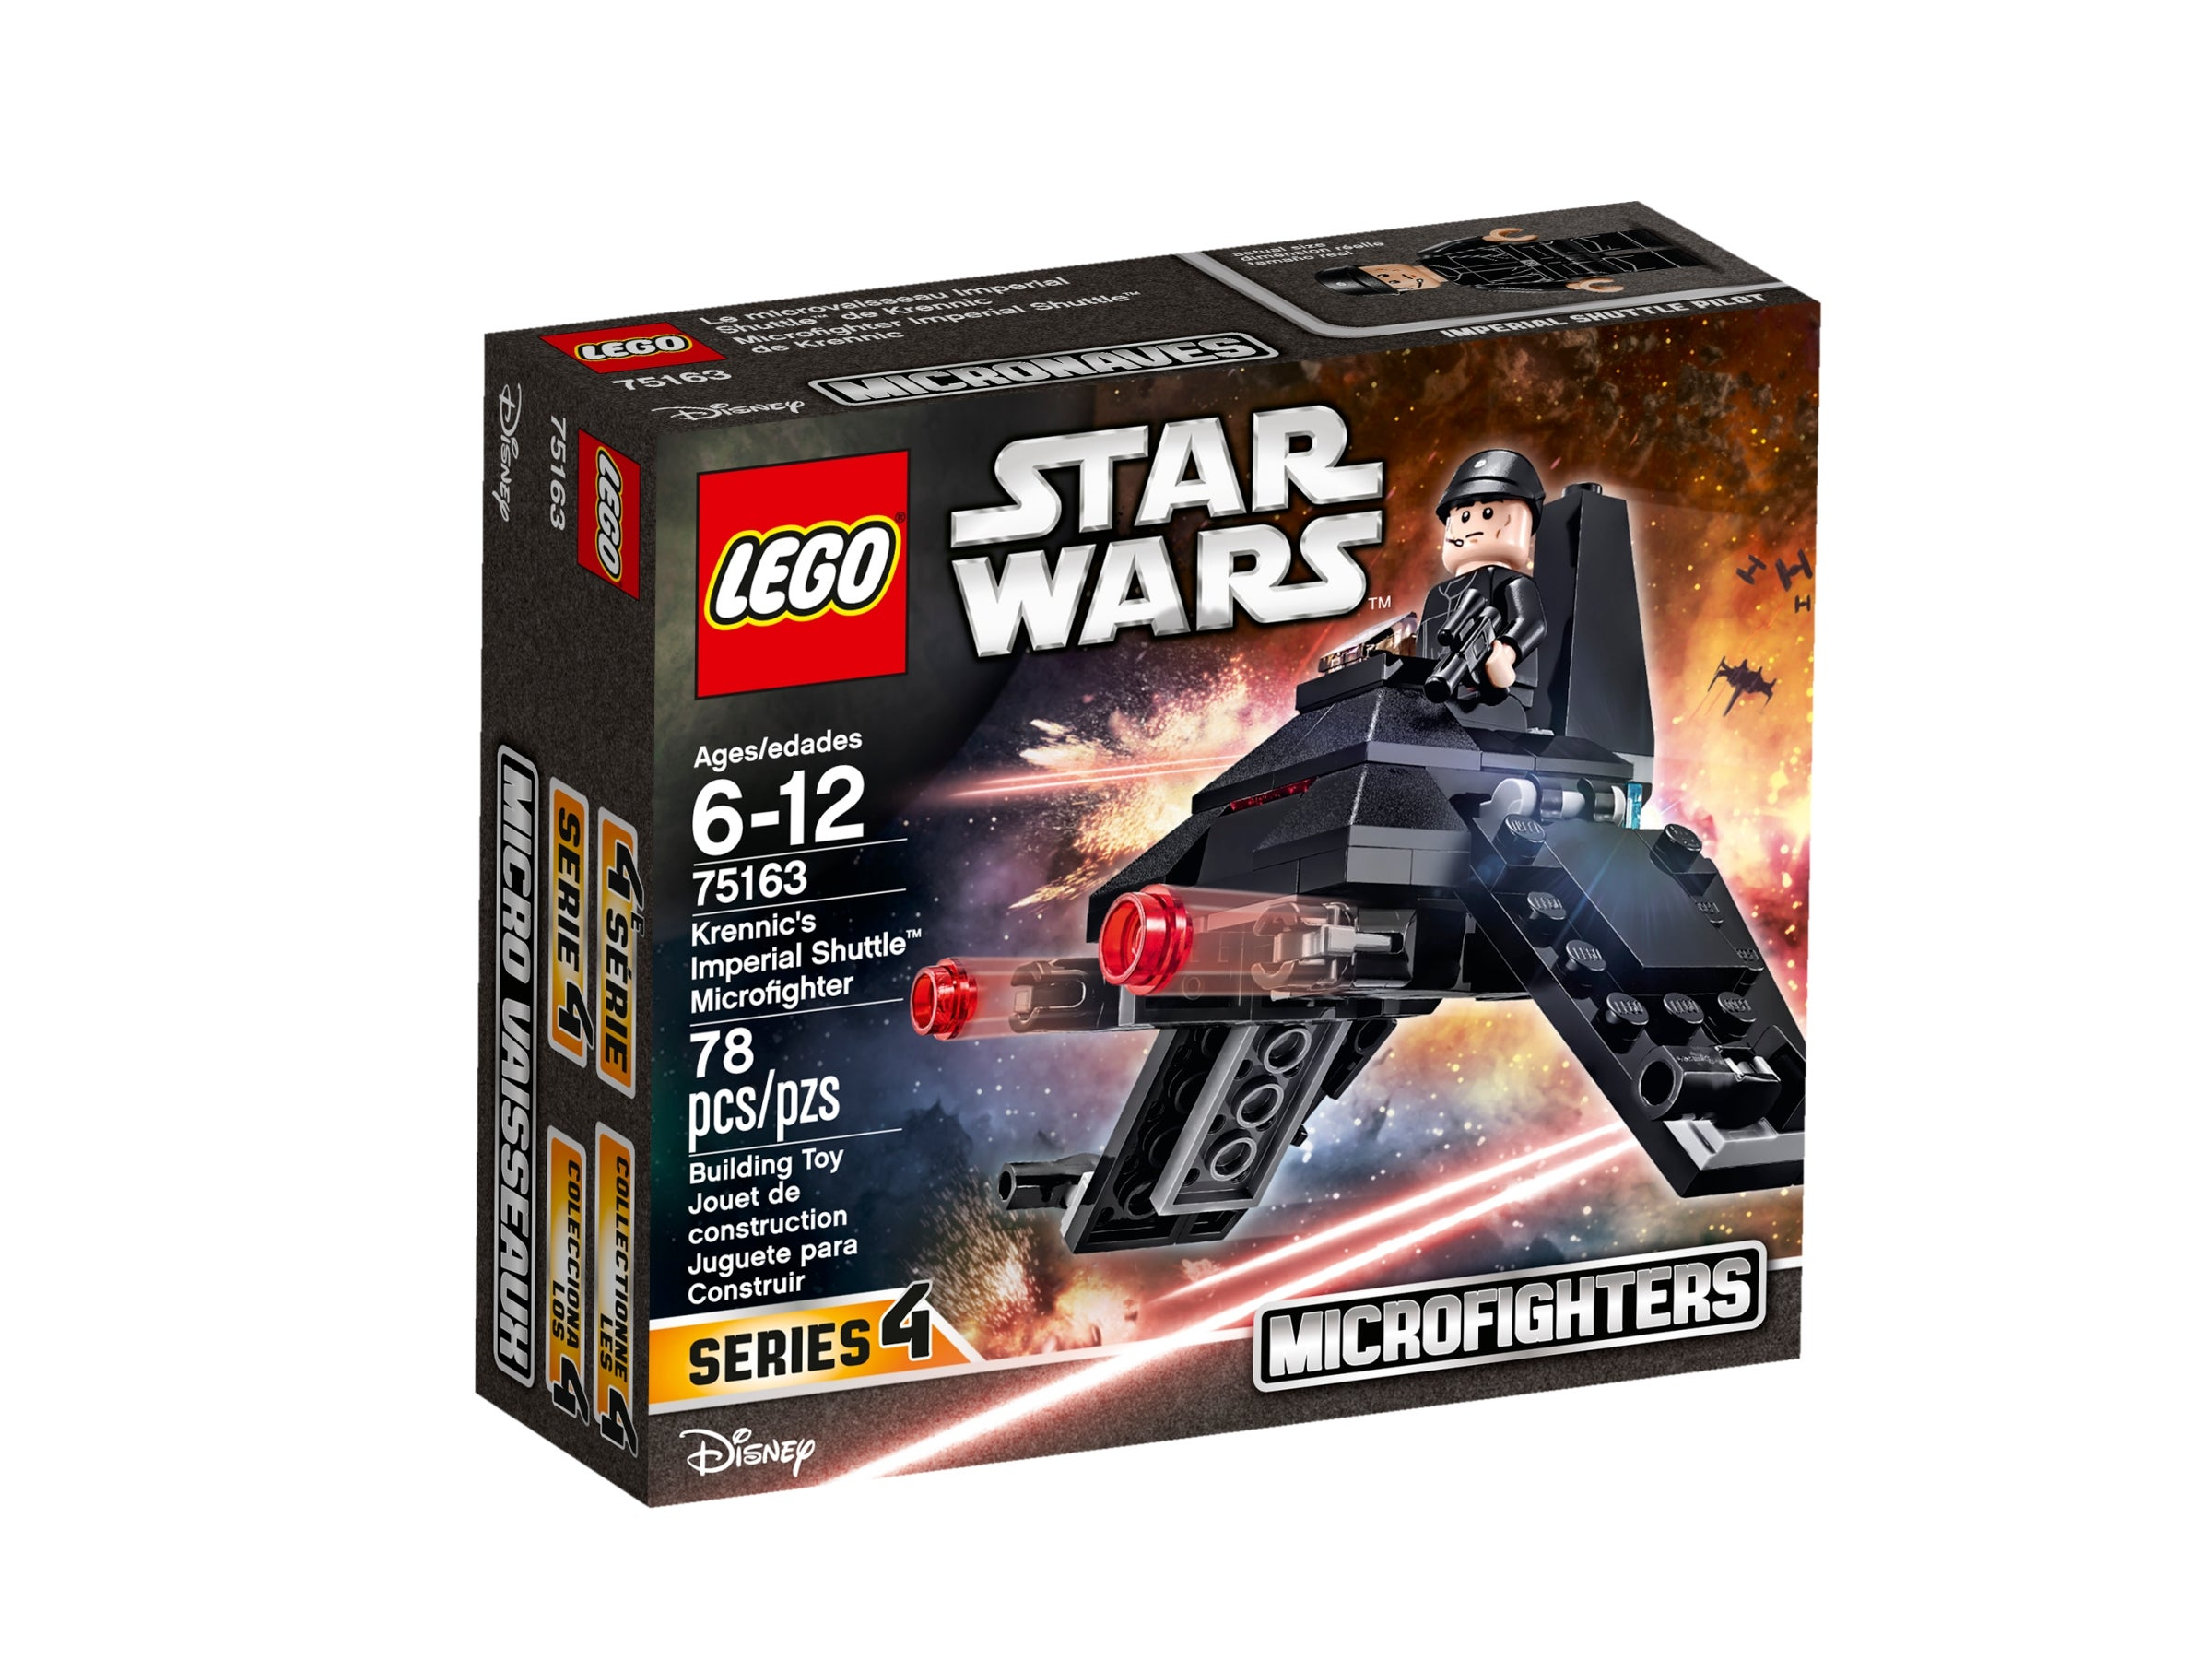 Lego STAR WARS #75163 Krennic/'s Imperial Shuttle Microfighters Building Toy Set